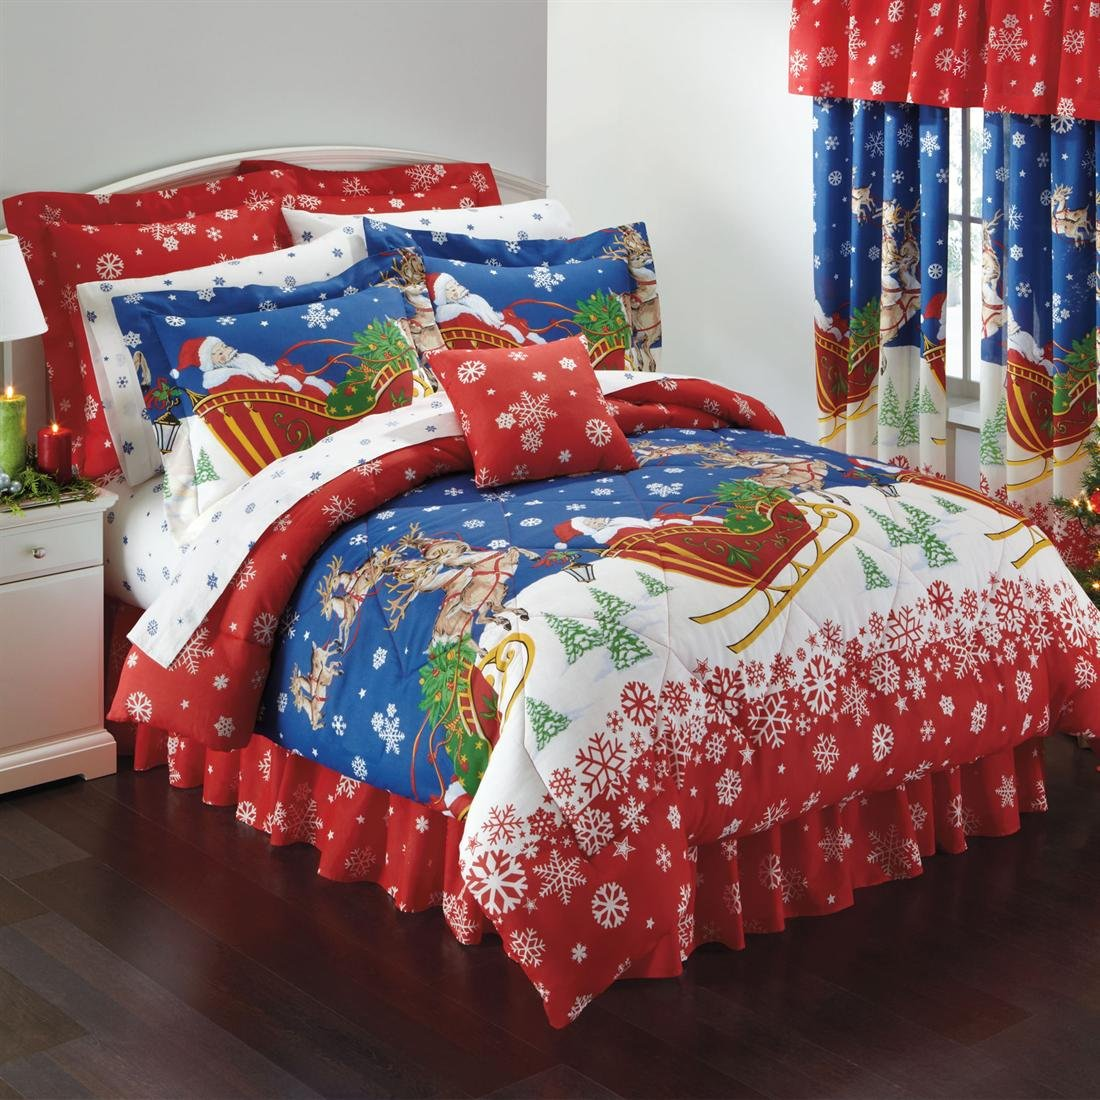 Bed Linens And More. UnbeatableSale. Mezzati. OctoRose LLC. See more retailers. Christmas Bedding Sets. Home. Bedding. Pickup Truck Filed with Ornament Cold December Weather Snowflakes Merry Christmas, Decorative 3 Piece Bedding Set with 2 Pillow Shams, Multicolor, by Ambesonne. Product Image. Price $